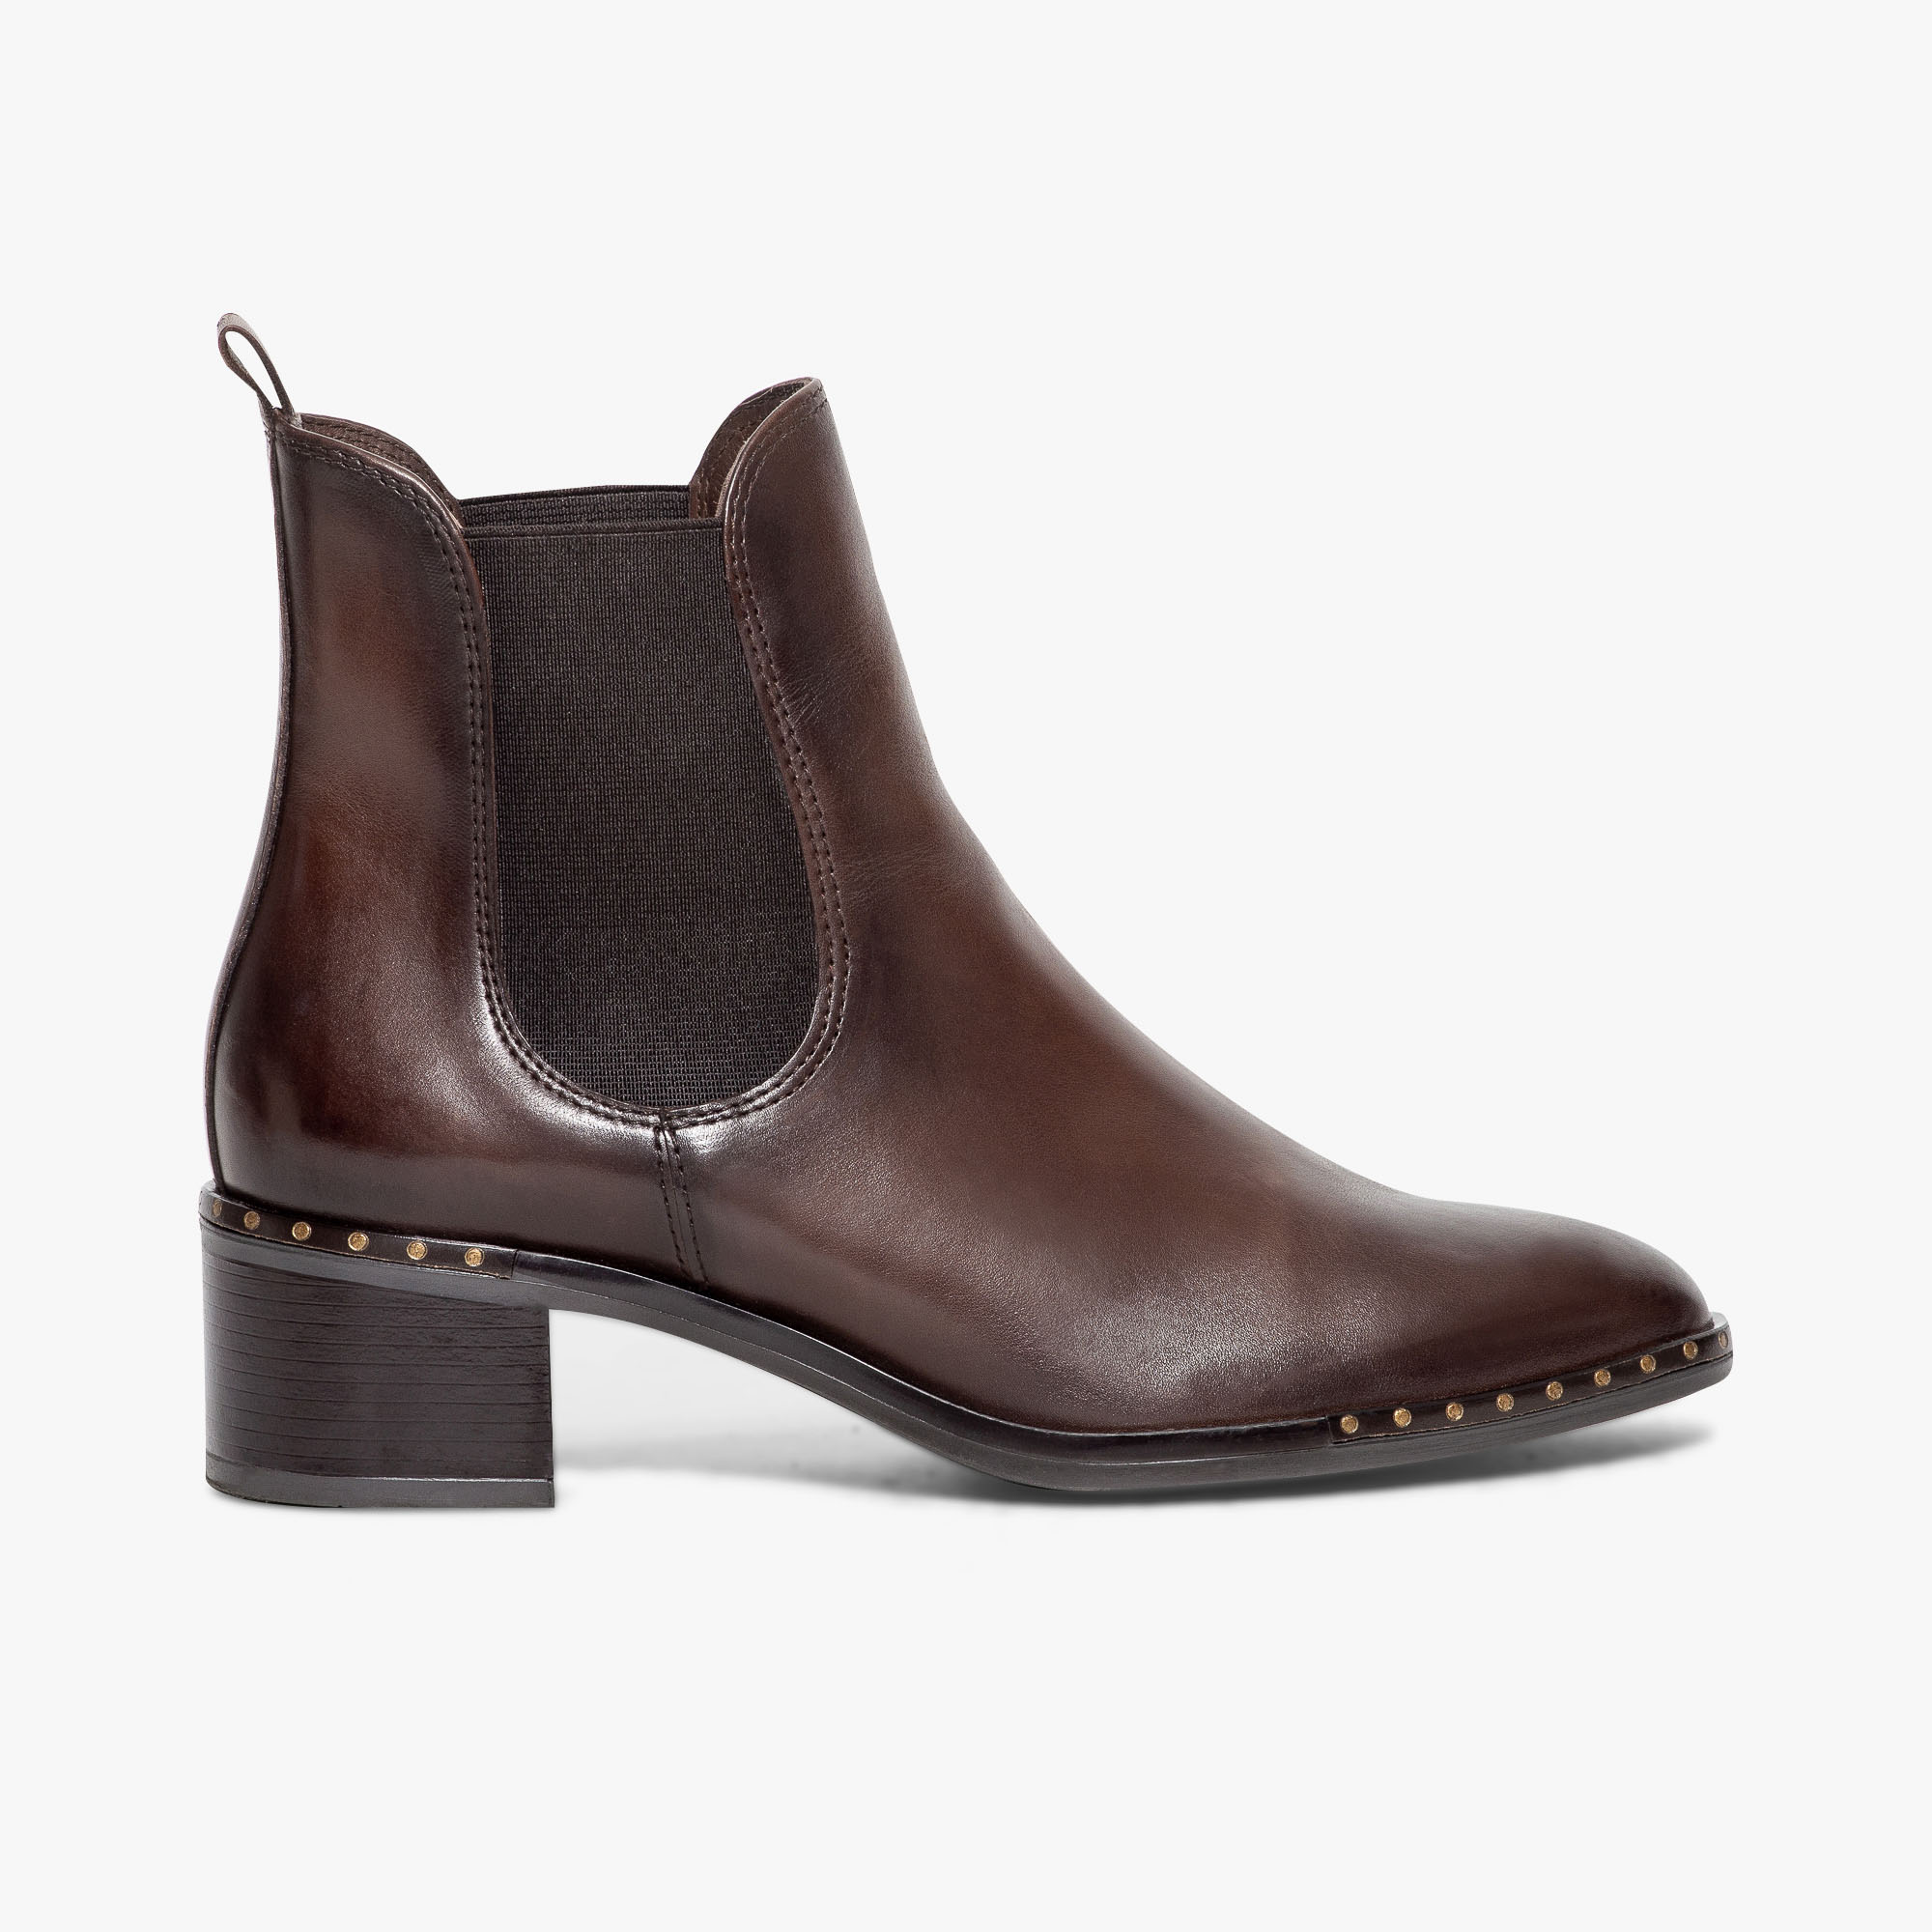 CHELSEA BOOTS MOSCOU